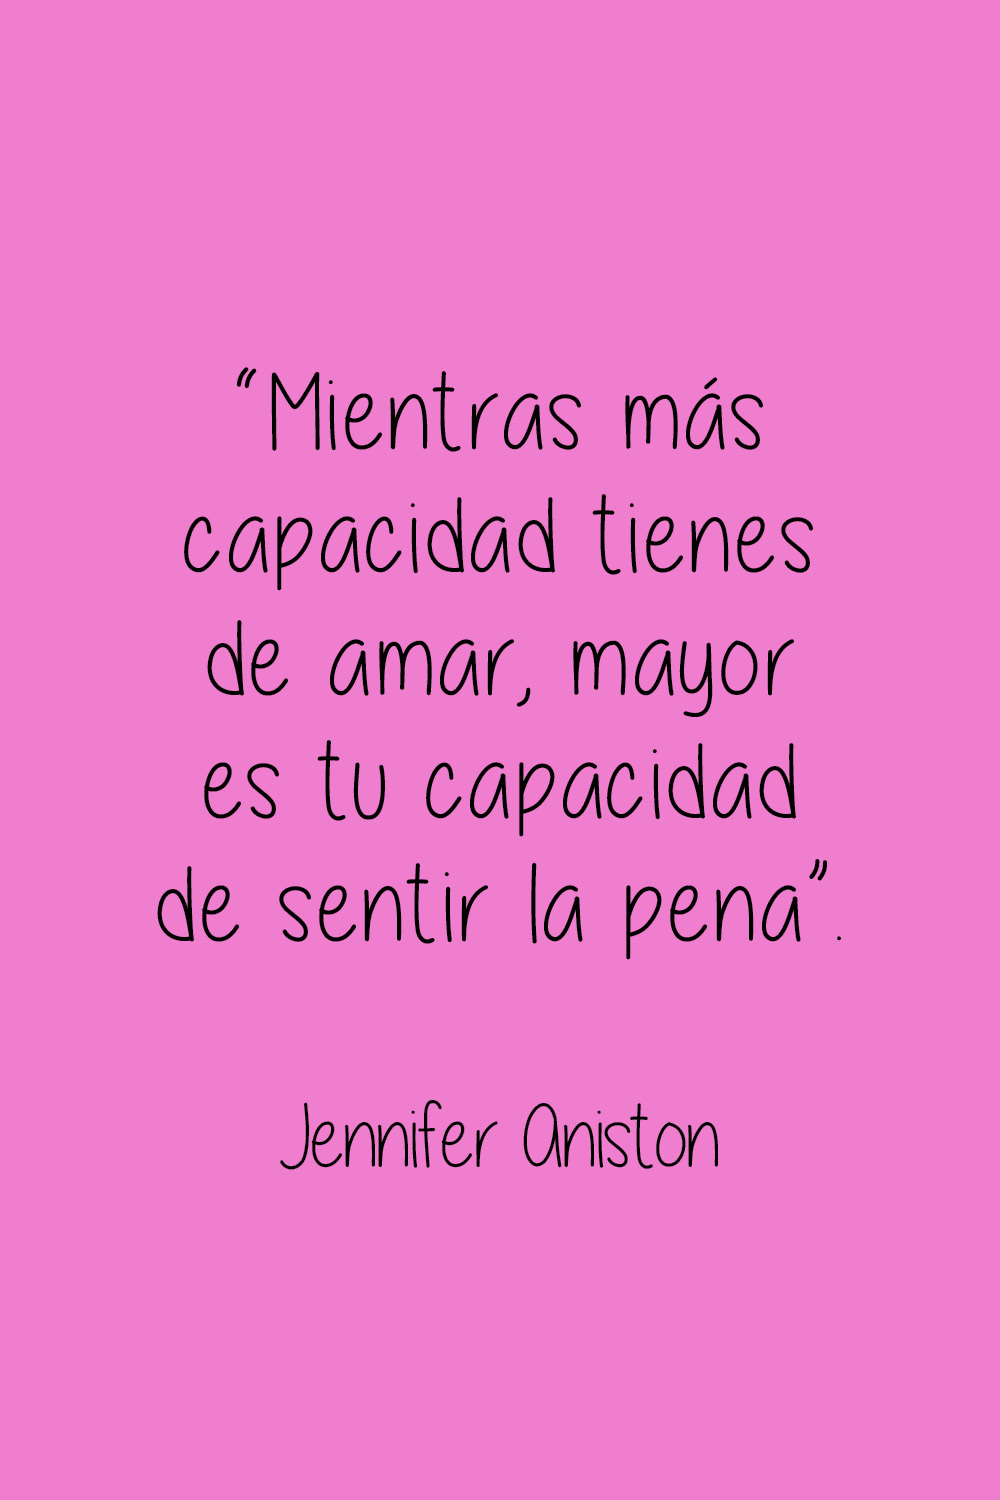 jennifer aniston frase celebre.